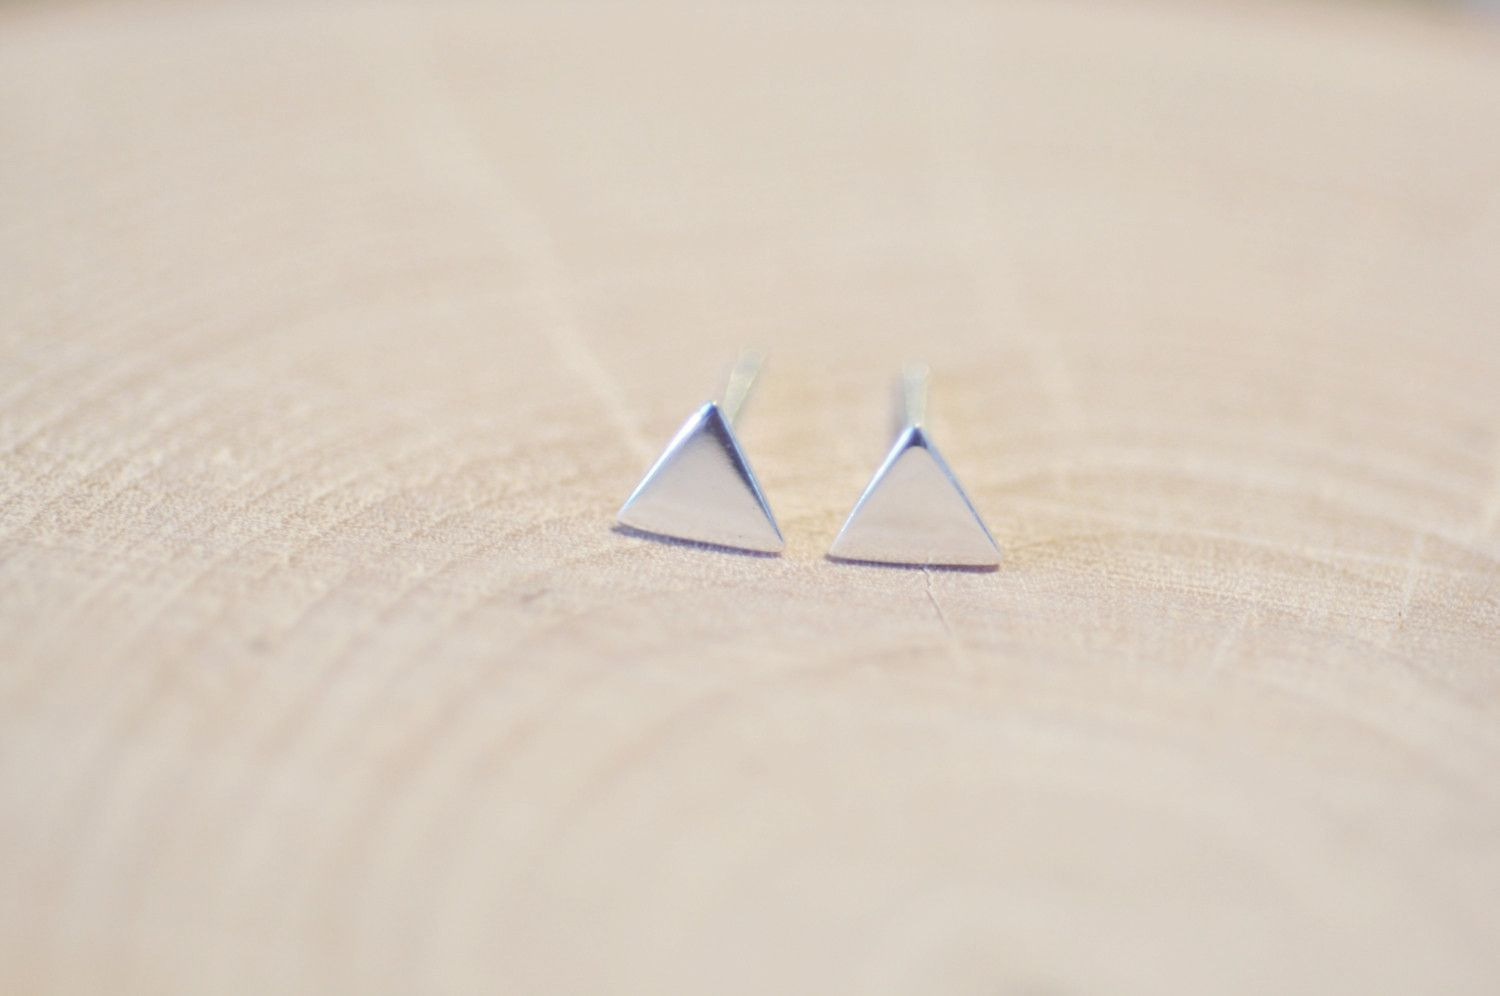 6ba802047 Simple Edgy Flat Triangle Stud Earrings...minimalist earrings...small  enough for everyday wear! * Triangle measures 5mm * Made from Solid Sterling  Silver ...